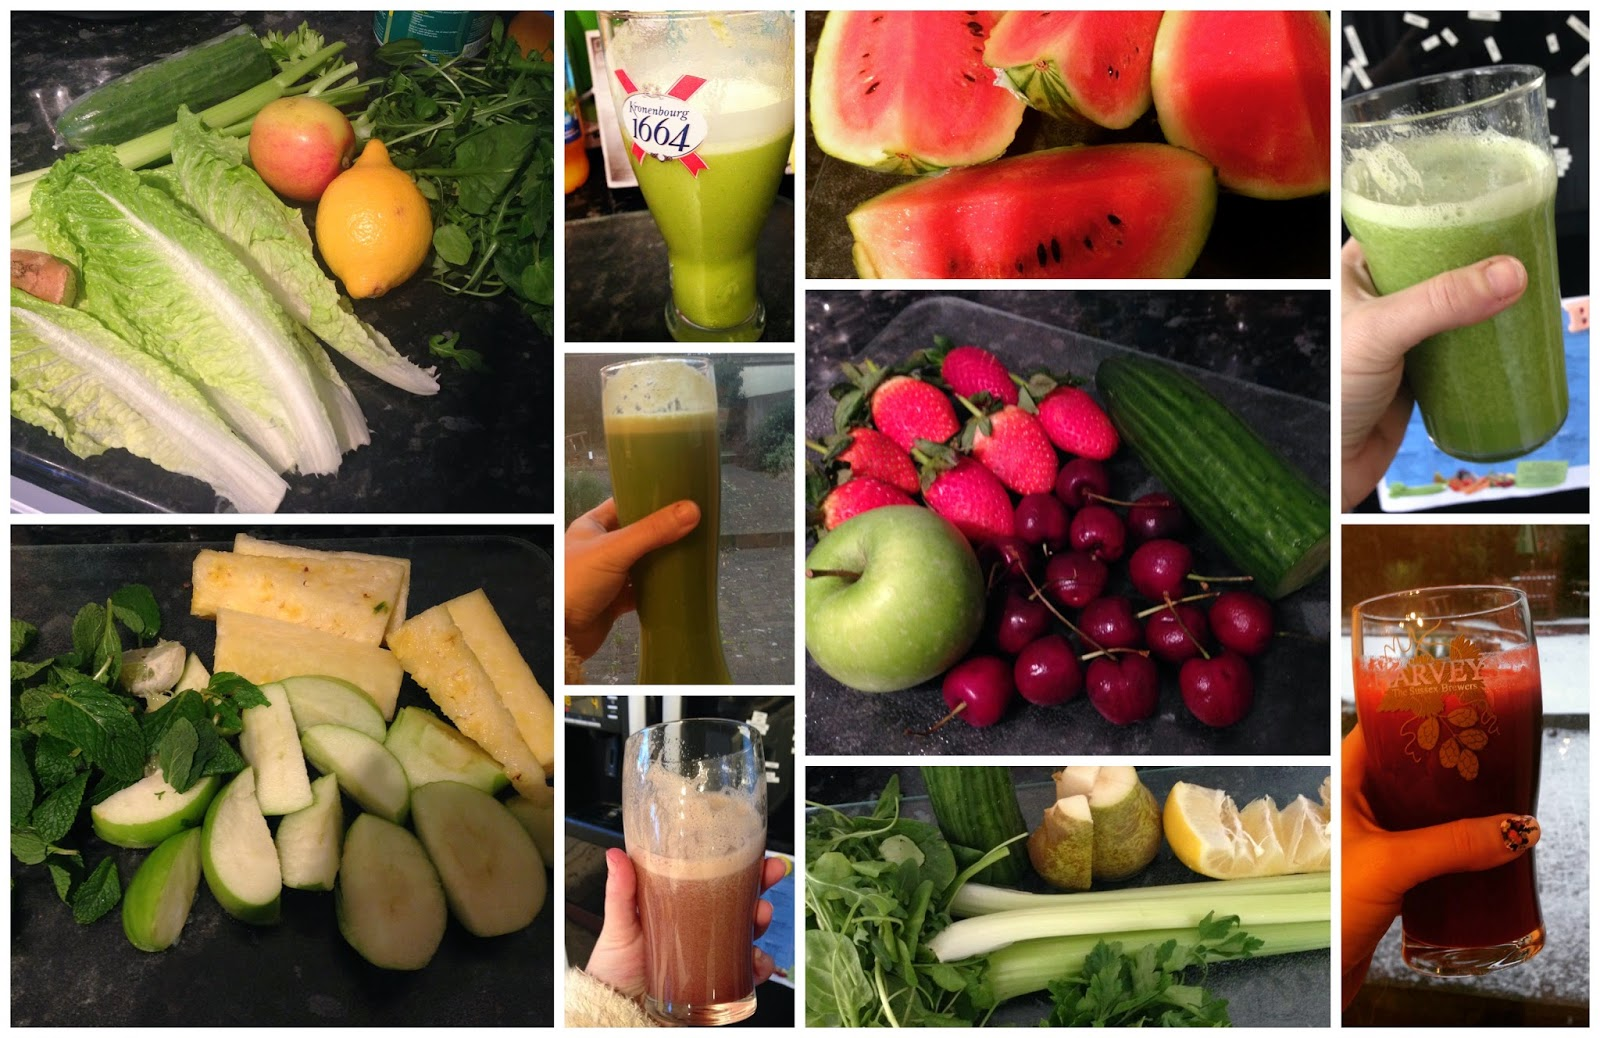 #RealJuiceReboot with Madeline Shaw and The Body Coach